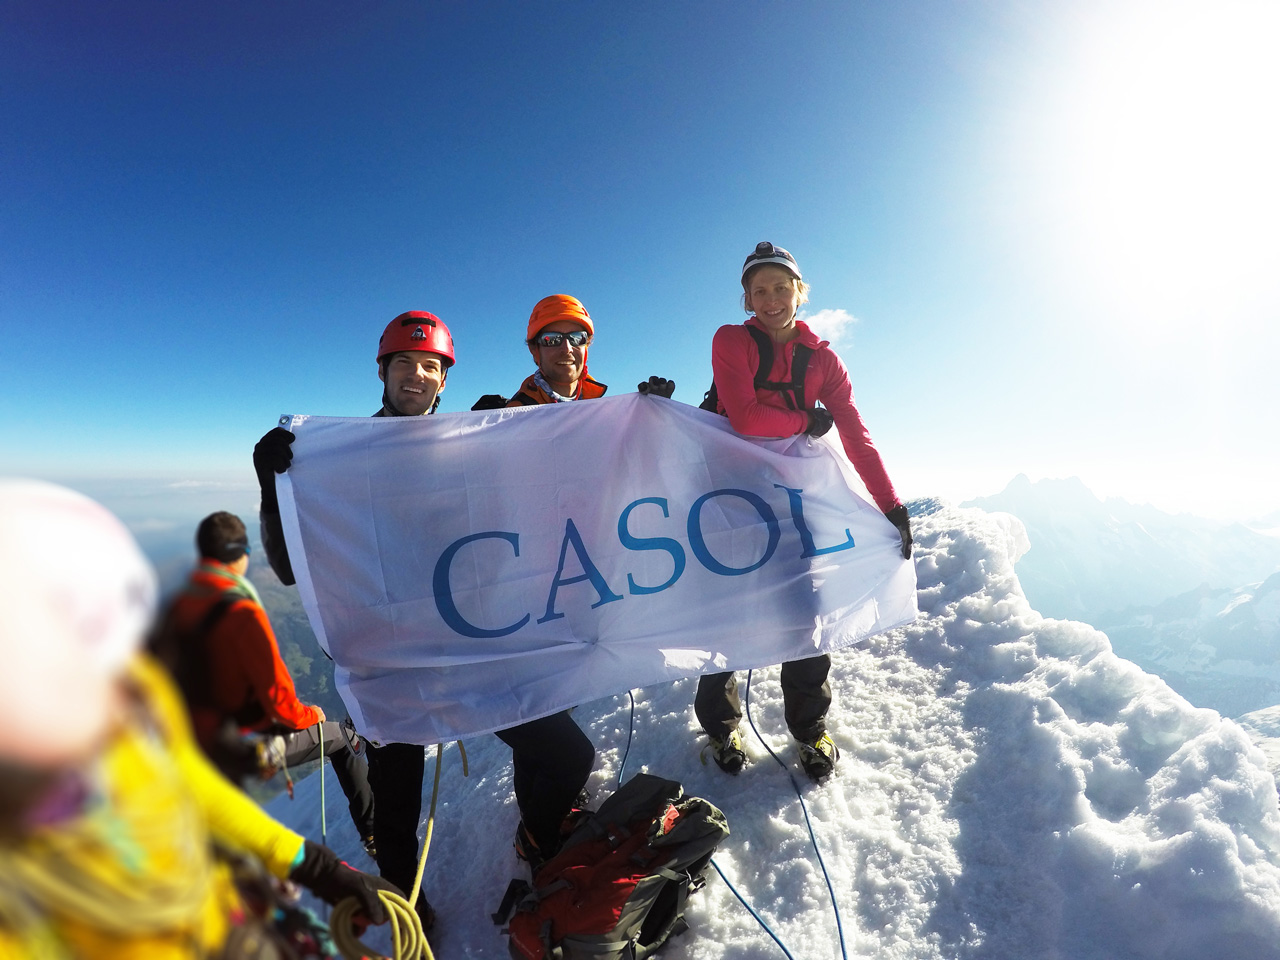 Antoine Labranche, Guillaume Omont and Alina Zagaytova, holding the CASOL flag at the summit of the Eiger